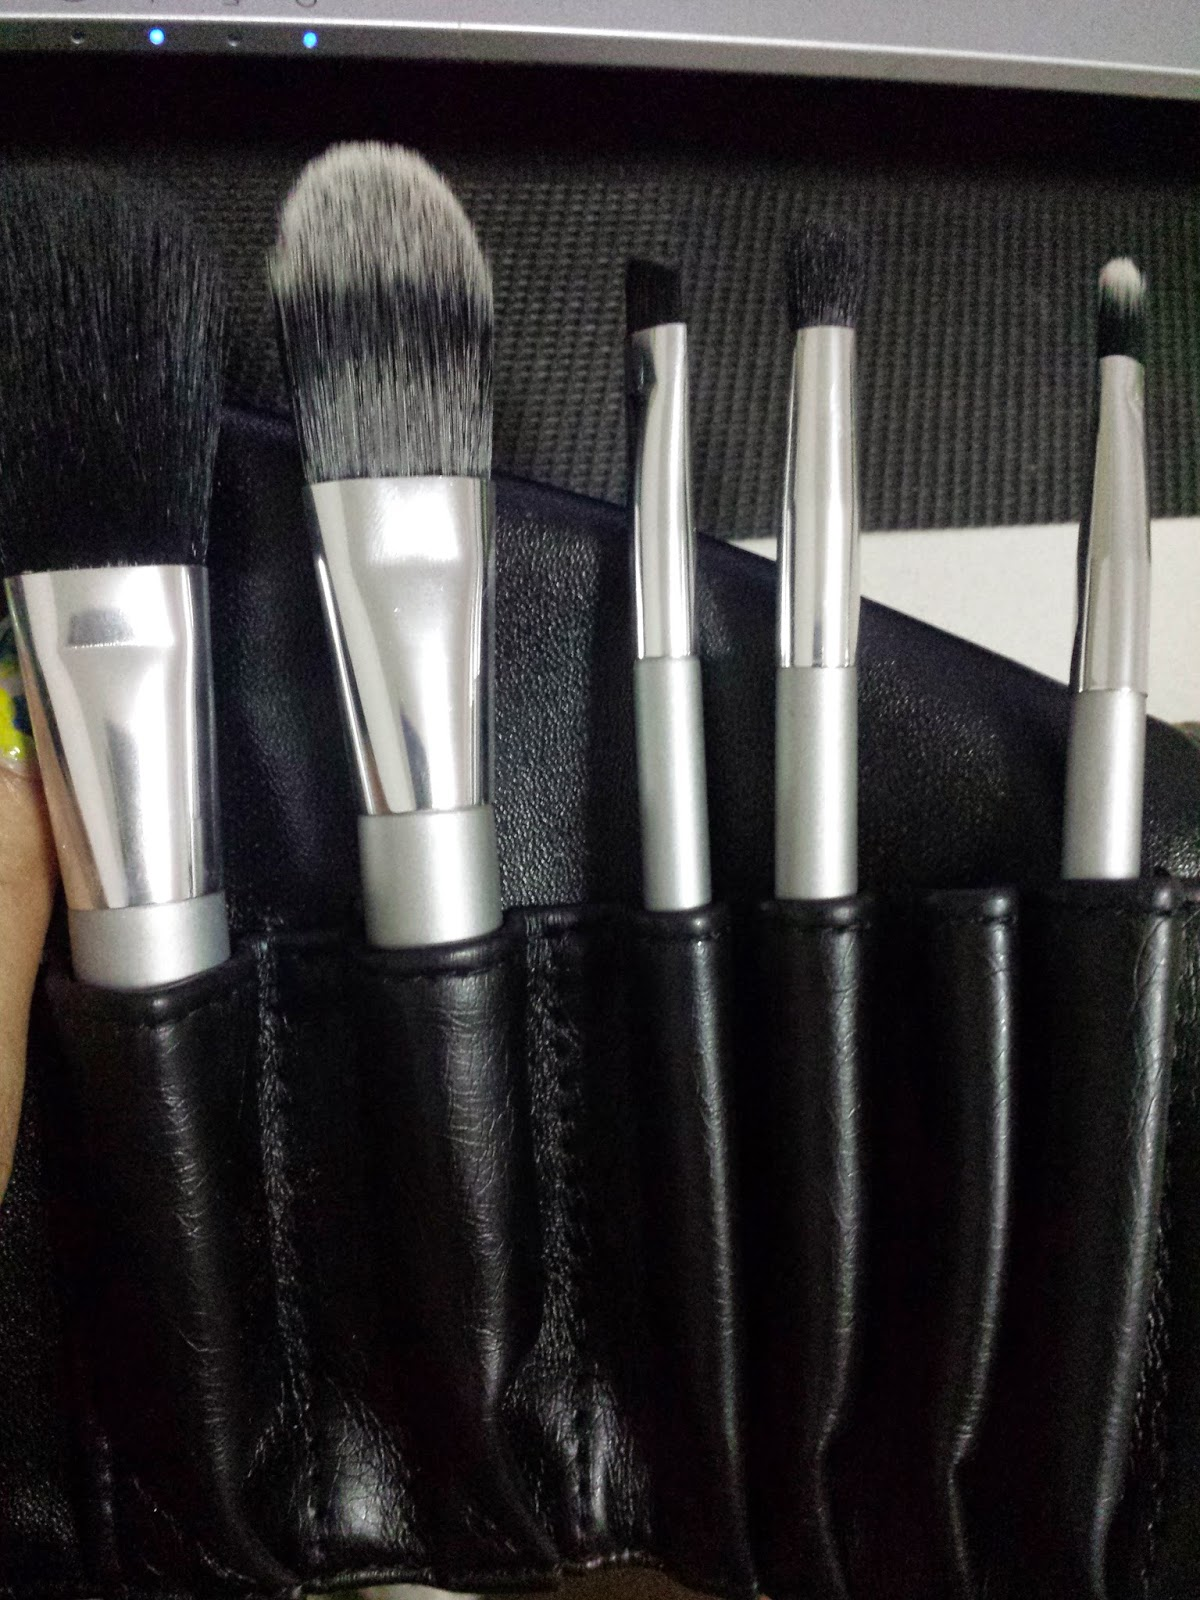 Laneige brushes